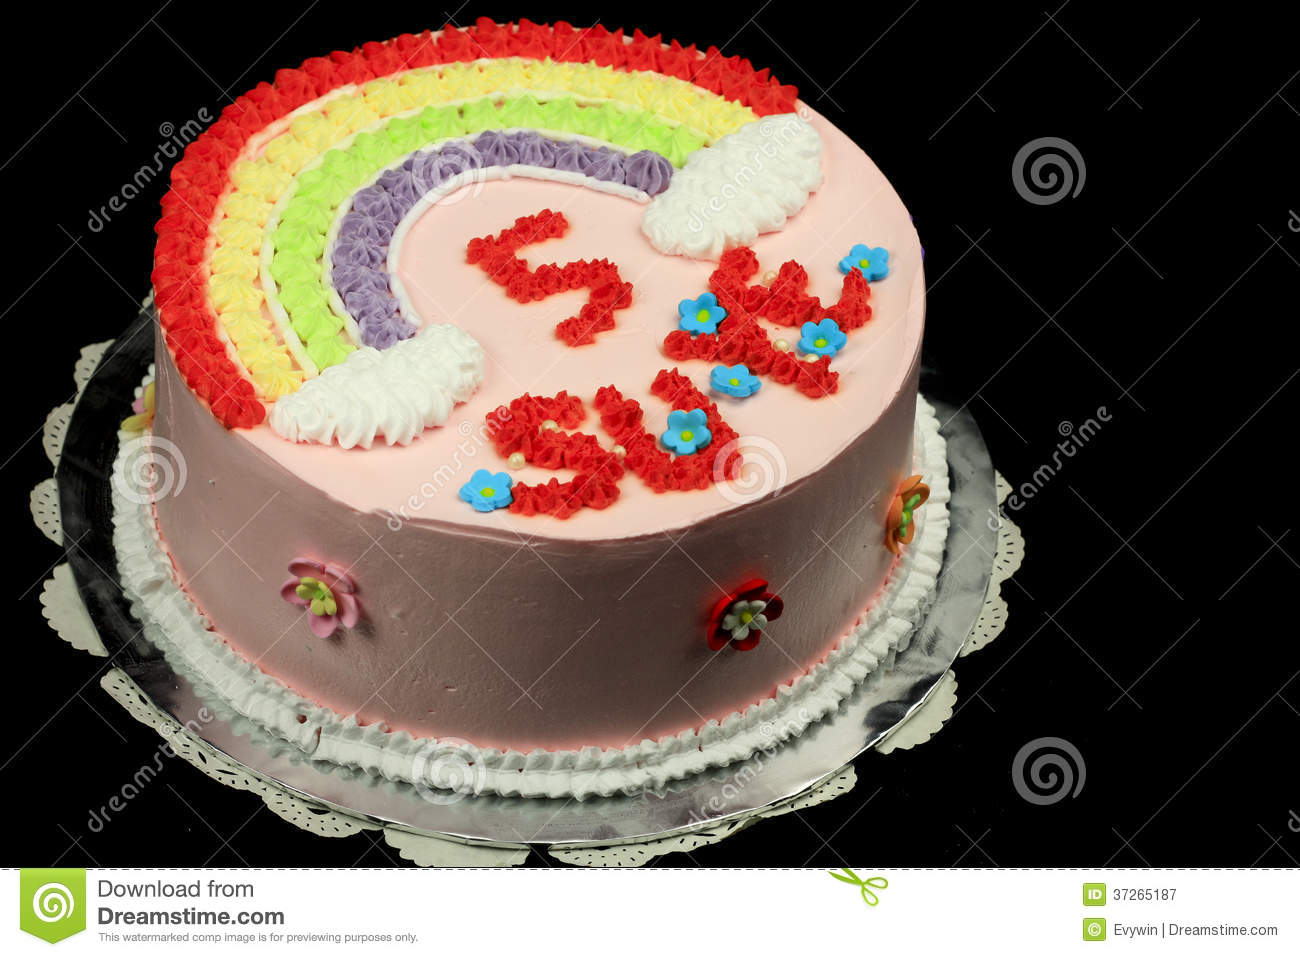 Birthday Cake Rainbow Design : Rainbow birthday cake stock image. Image of pattern ...